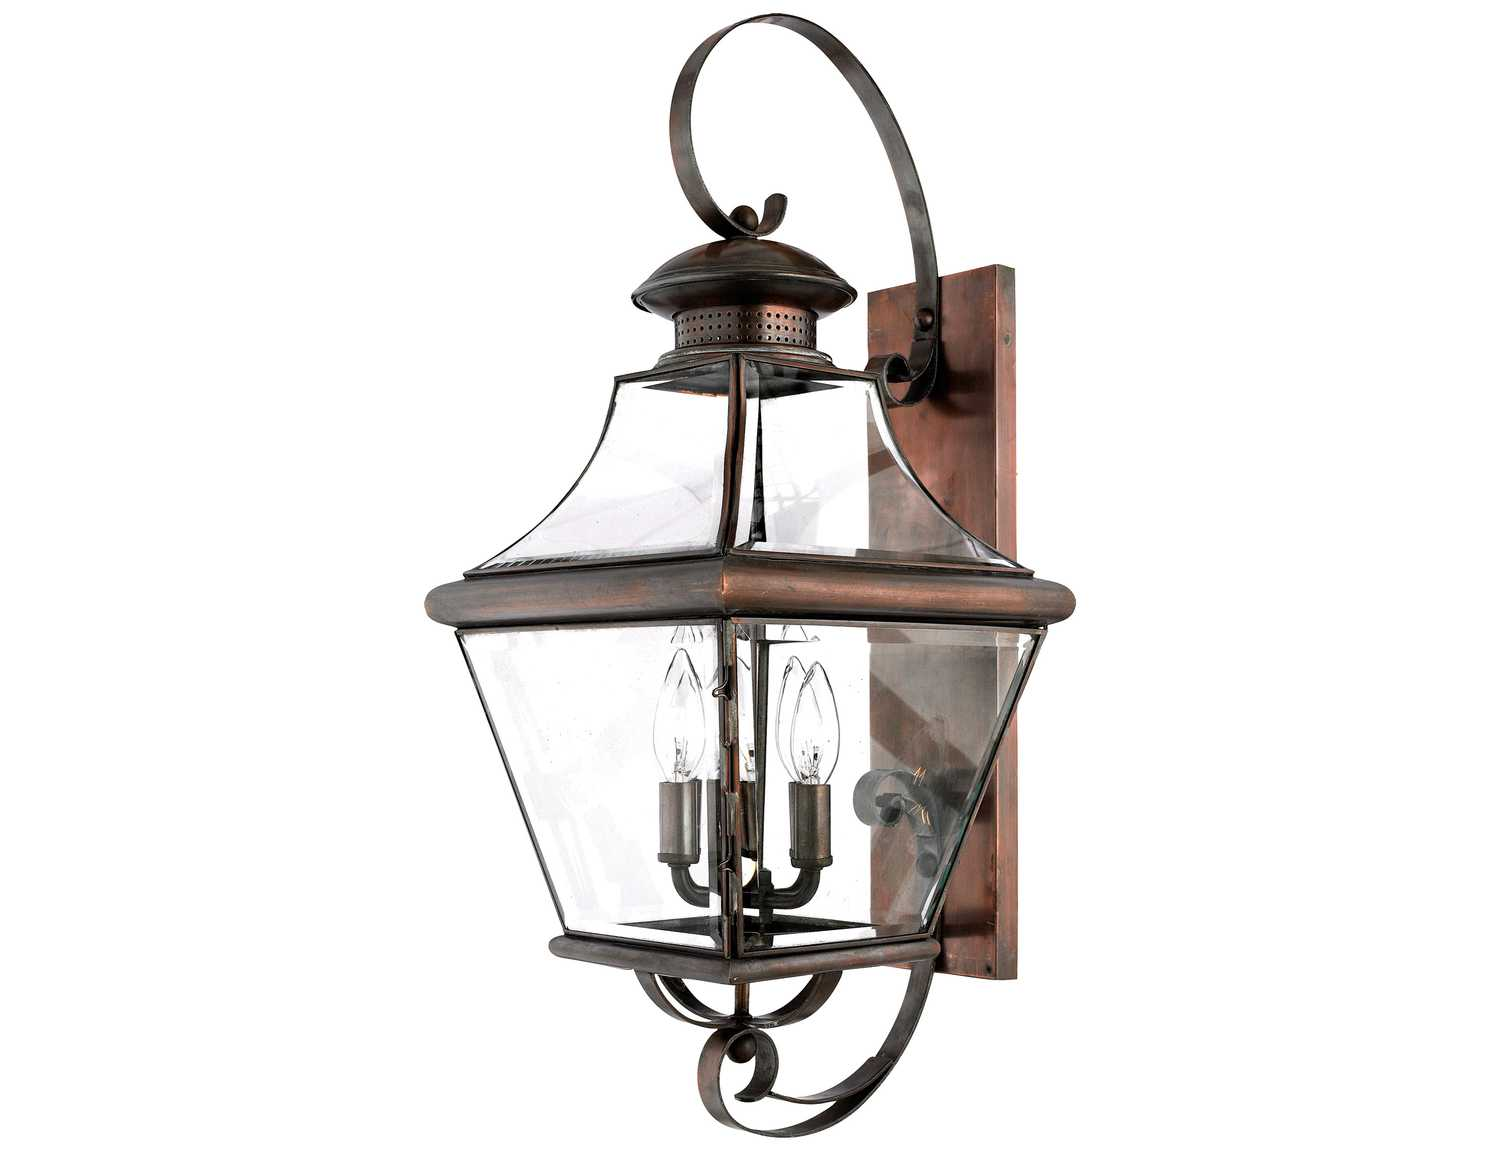 quoizel carleton patinaed solid copper four light outdoor wall light